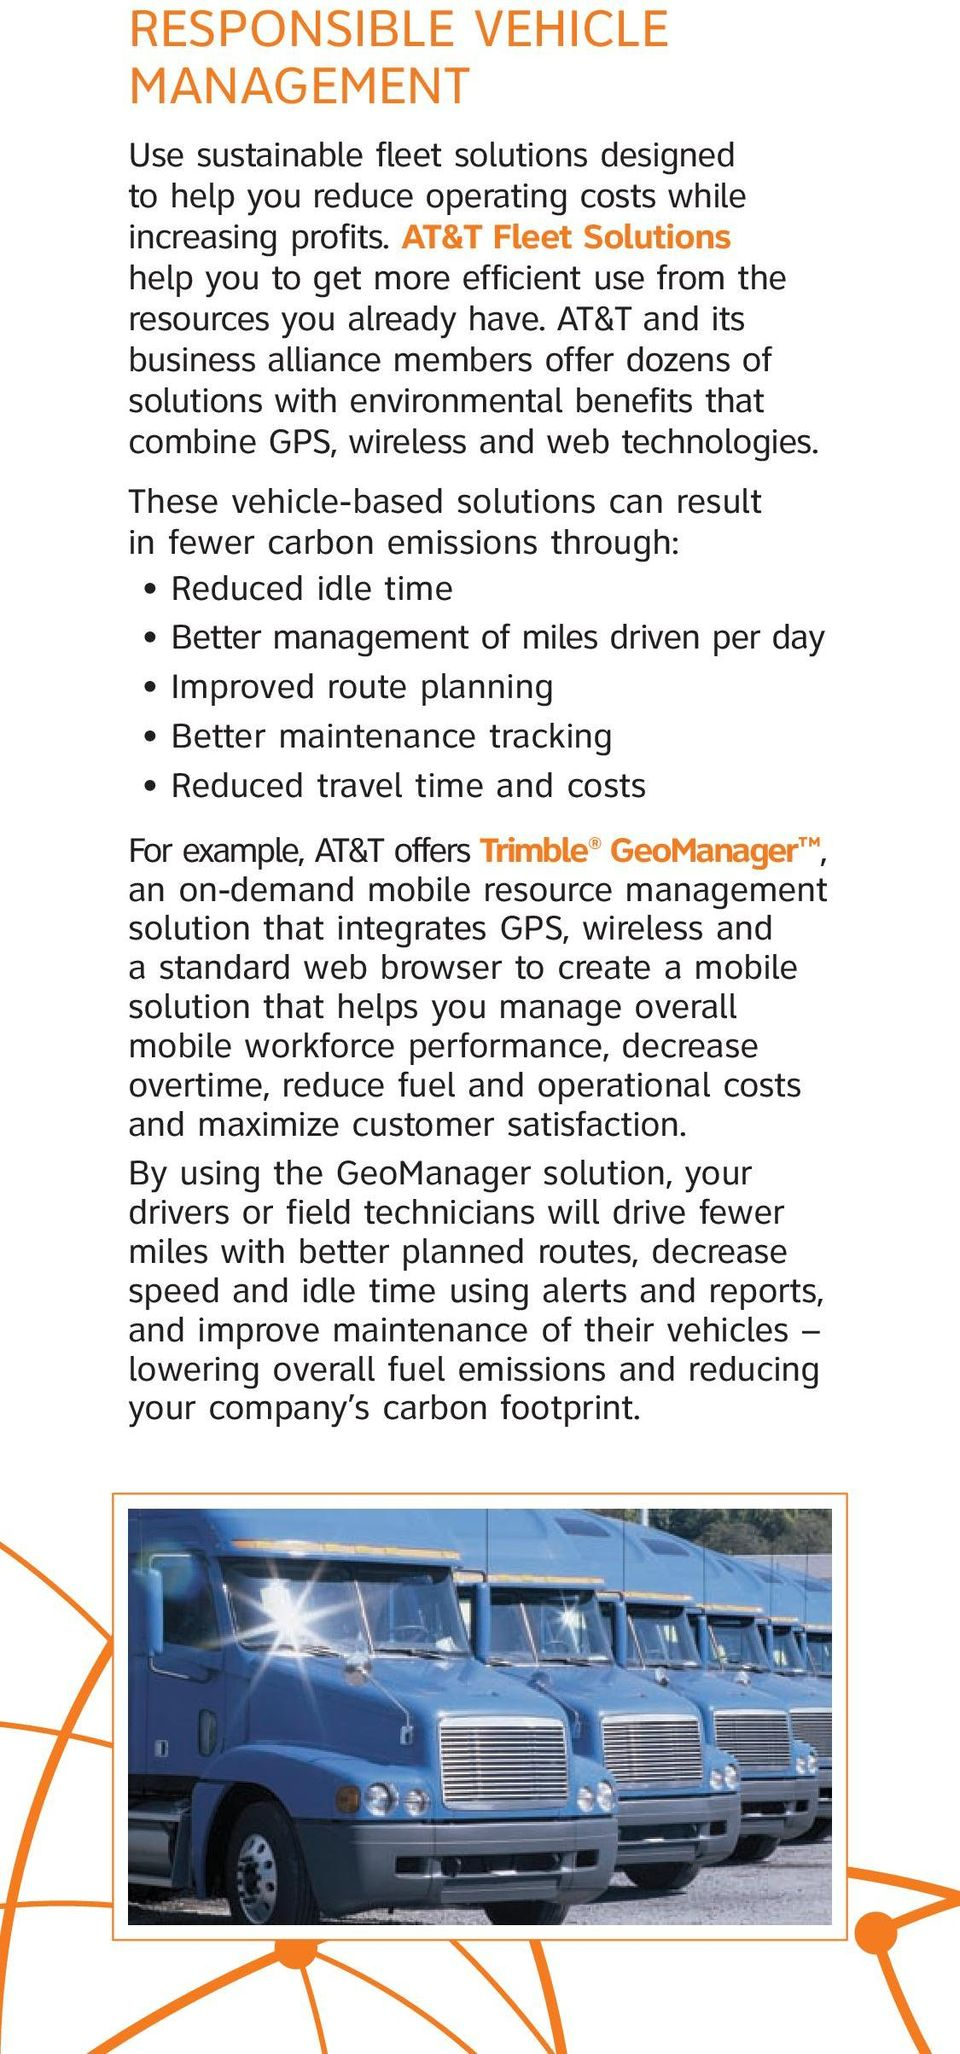 AT&T and its business alliance members offer dozens of solutions with environmental benefits that combine GPS, wireless and web technologies.